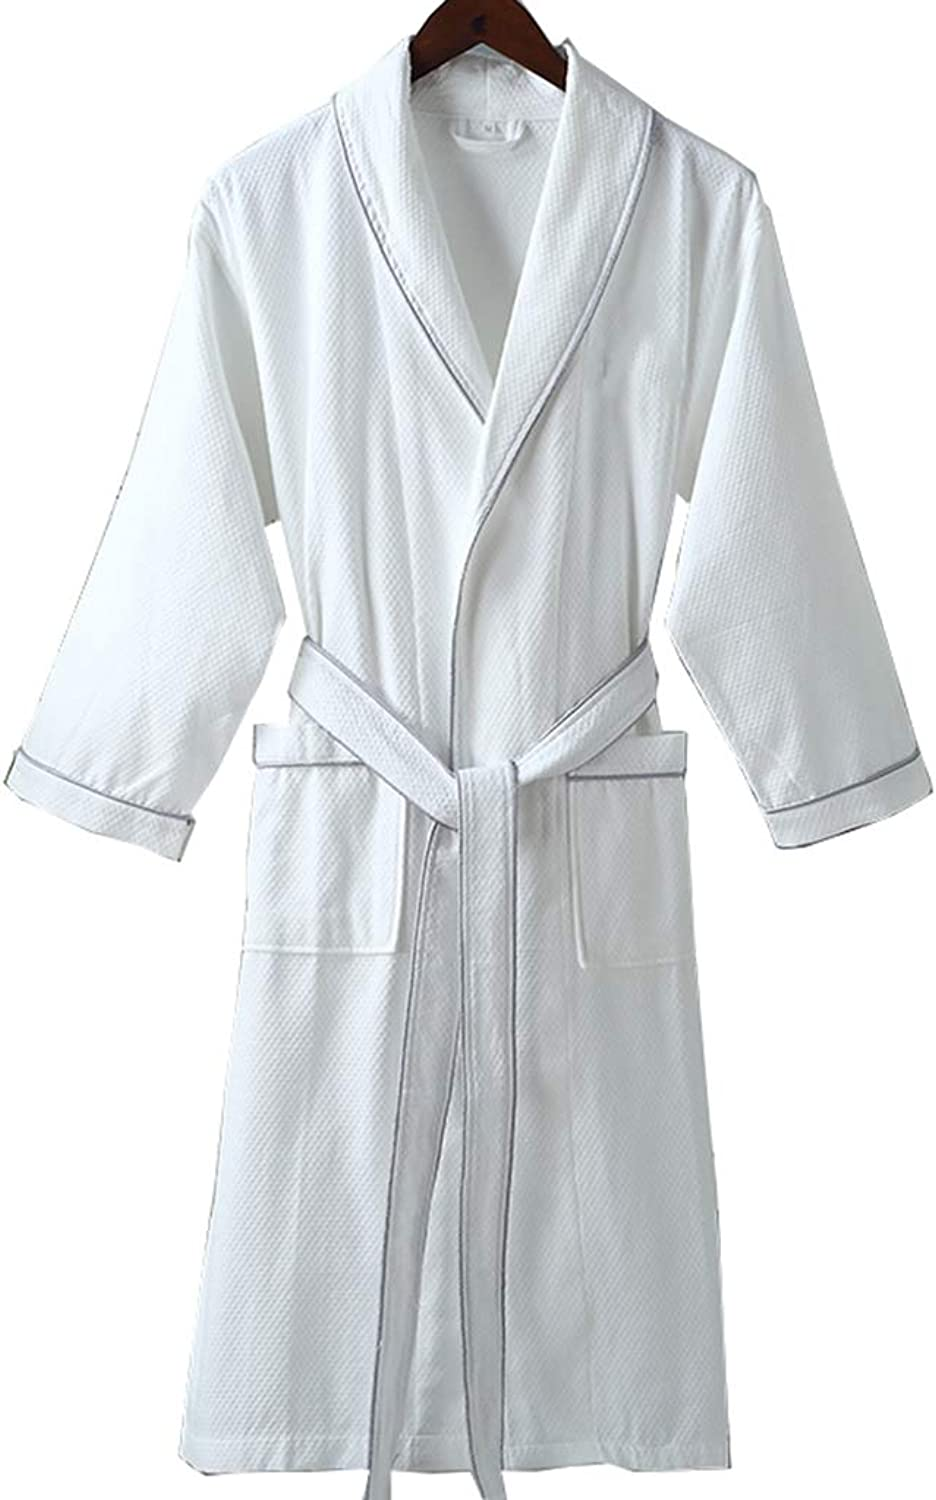 Bathrobe Dressing Gown Robe Cotton Thin Paragraph Robe Luxury Shawl Bath Towel Soft Water Absorption   Unisex Models   White (Size   M)